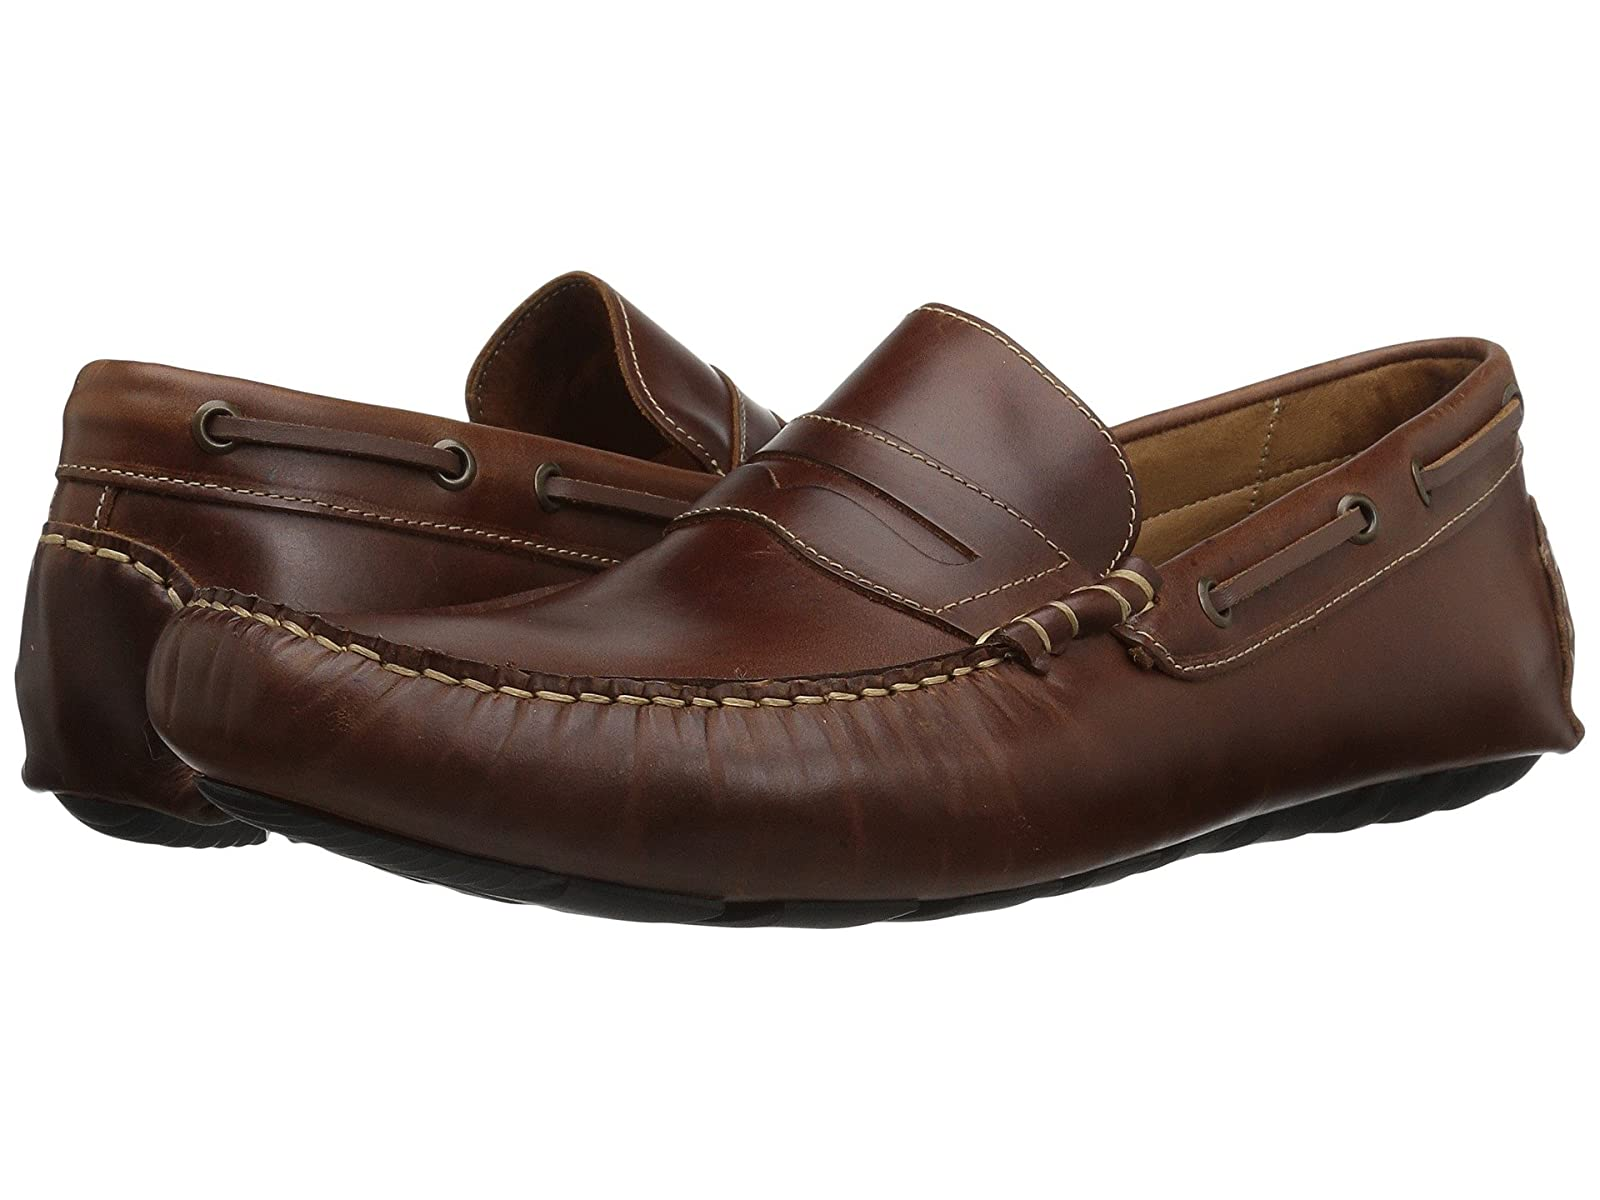 G.H. Bass & Co. WarrickAtmospheric grades have affordable shoes